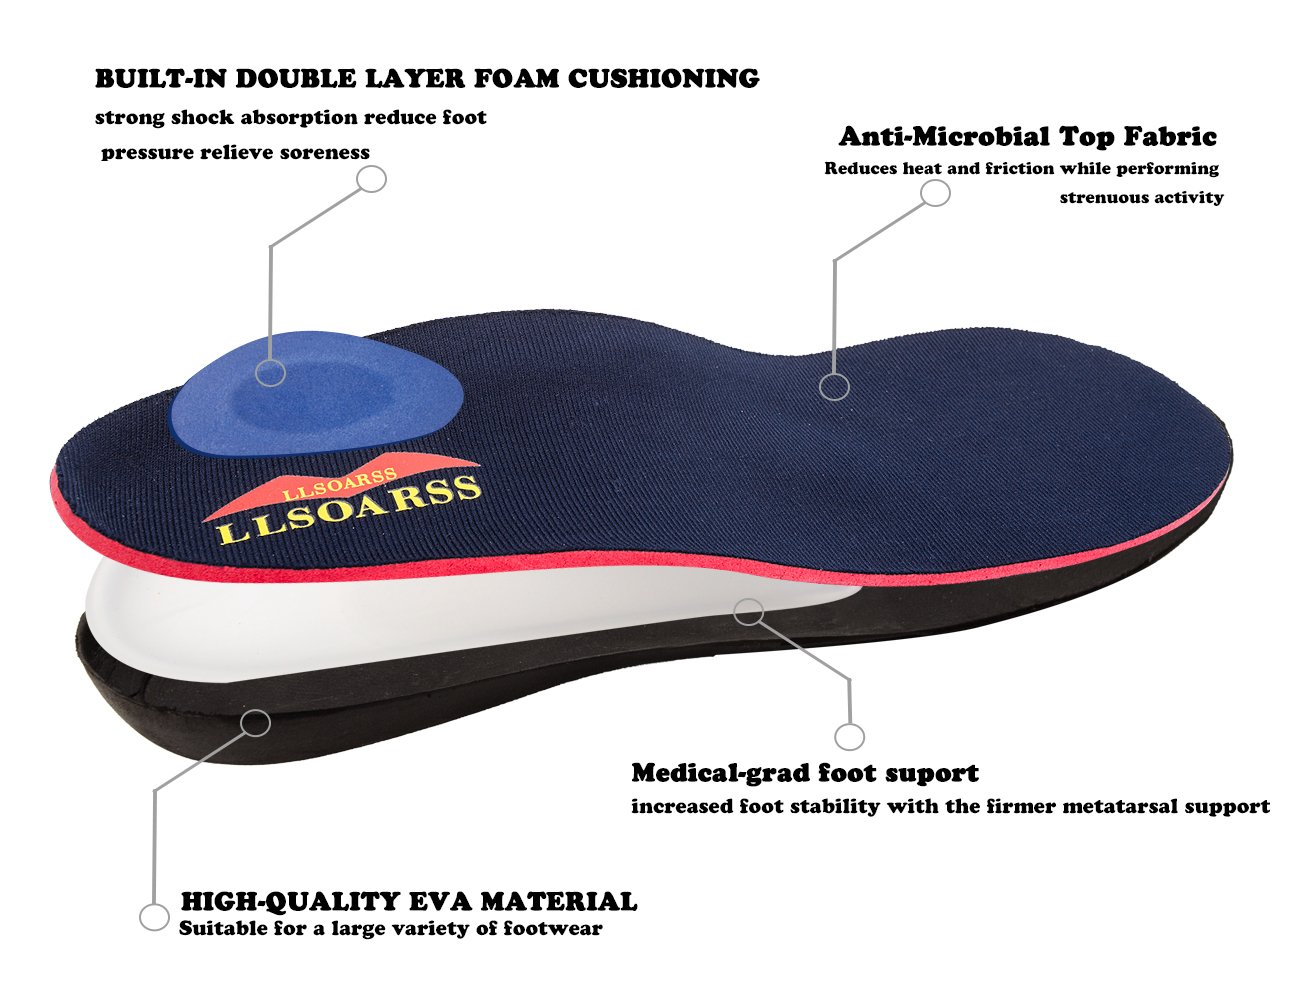 Orthotic insoles for Flat Feet by LLSOARSS, Shoe Inserts Arch Support Insoles for Plantar Fasciitis, Relieve Pain For Men and Women (Men 6-6 1/2 | Women 8-8 1/2)